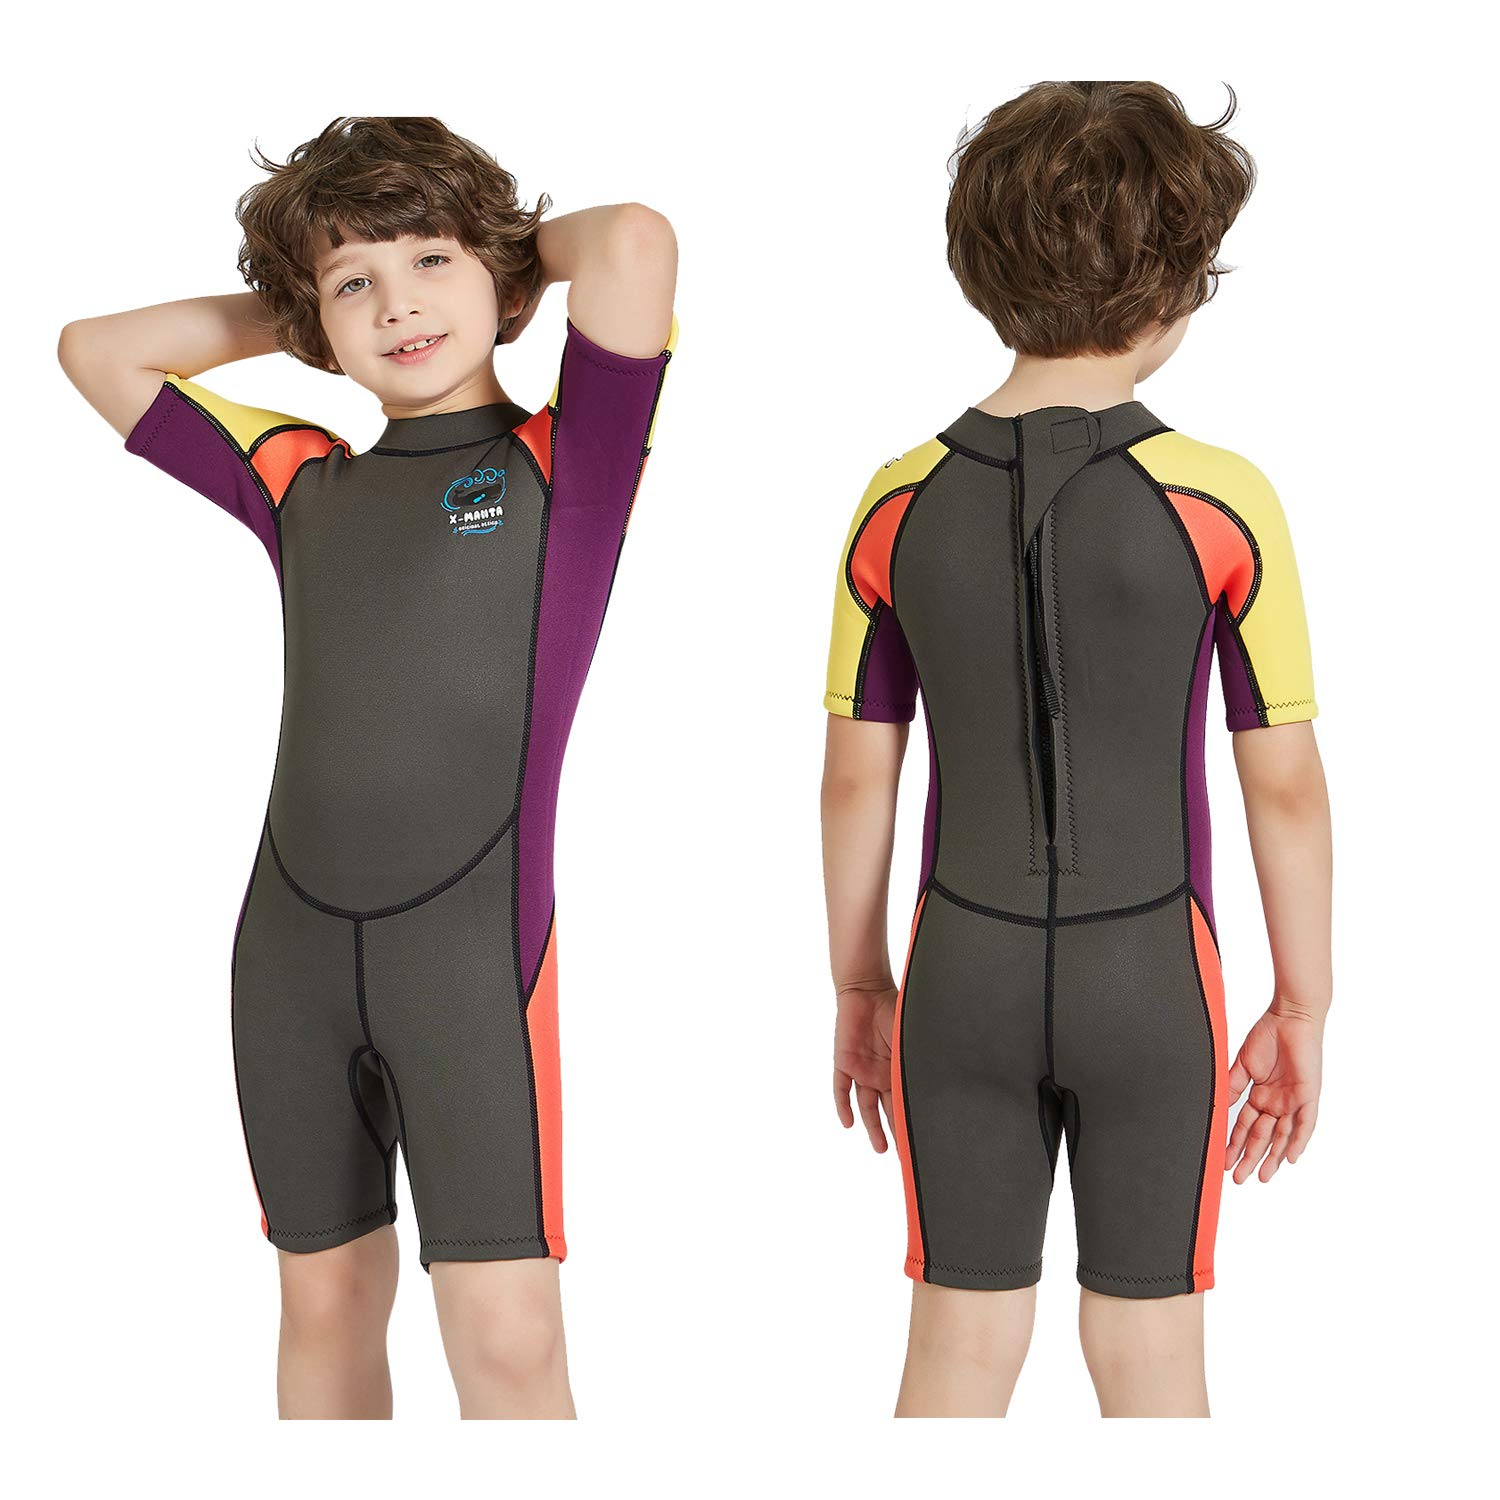 DIVE & SAIL Kids Wetsuit Shorty, 2.5mm Neoprene Thermal Swimsuit, Youth Boys and Girls Wet Suits for Snorkel Diving, Full Suit and Shorty Swimsuit (Boy's Shorty-Grey, Kids L Size) by DIVE & SAIL